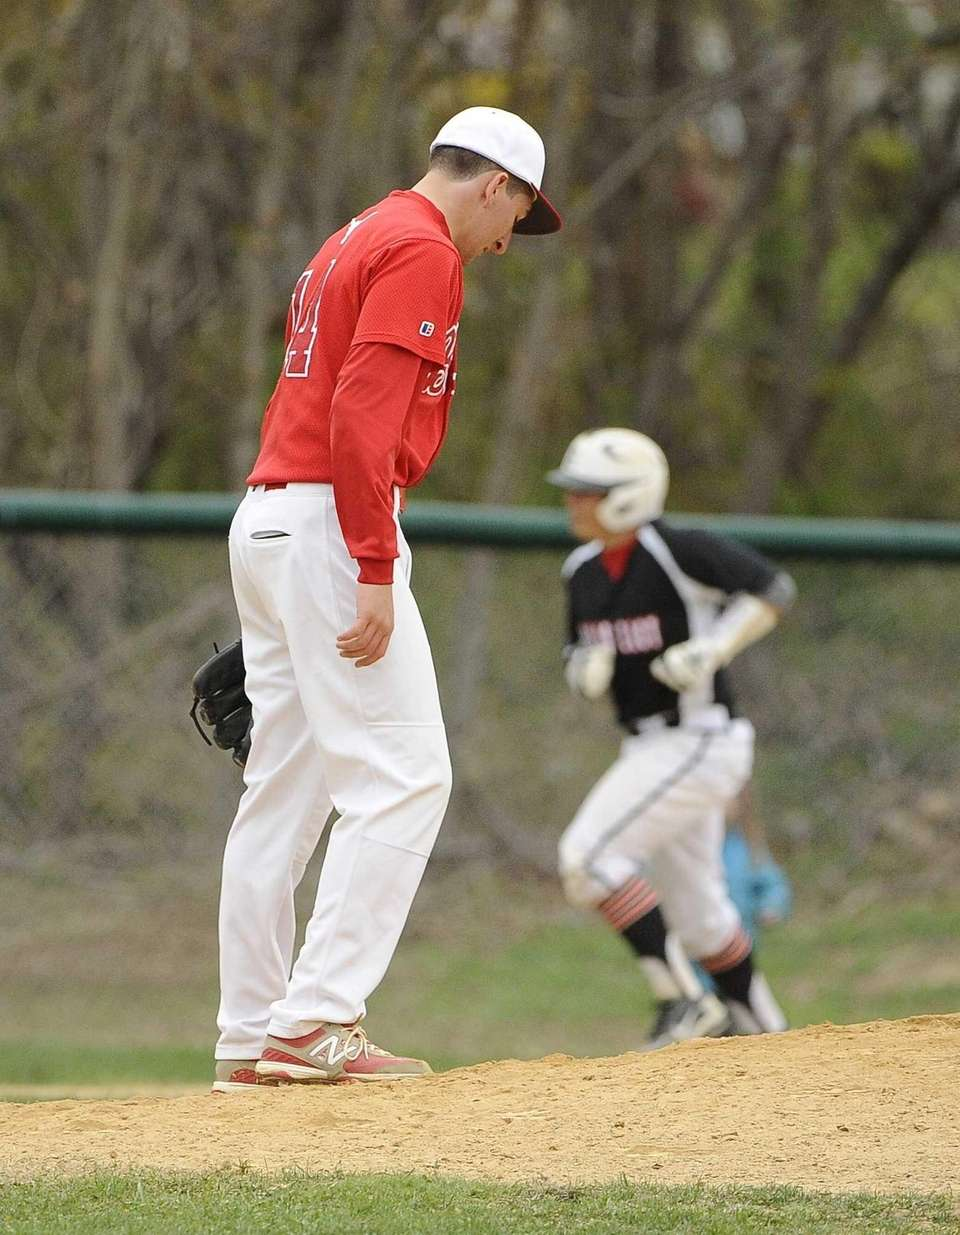 Smithtown East starting pitcher Dimitri Lettas reacts as